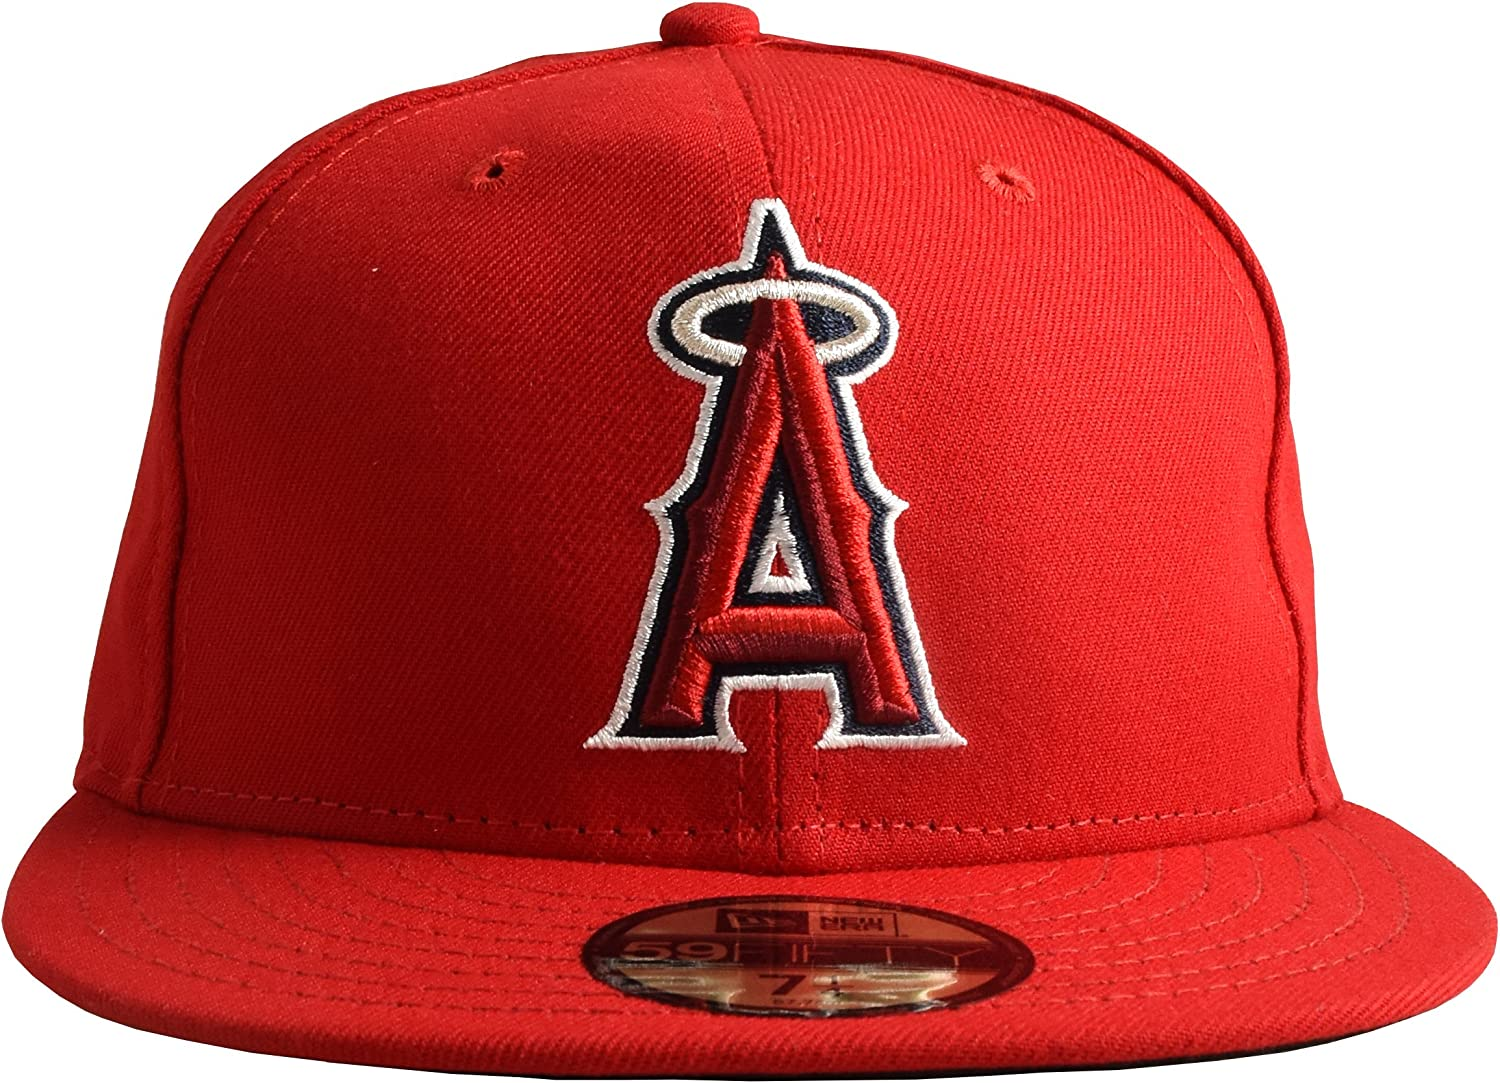 New Direct sale of manufacturer Era Anaheim Angels Fitted Hat Super beauty product restock quality top! 59Fifty Red Cap On-Field